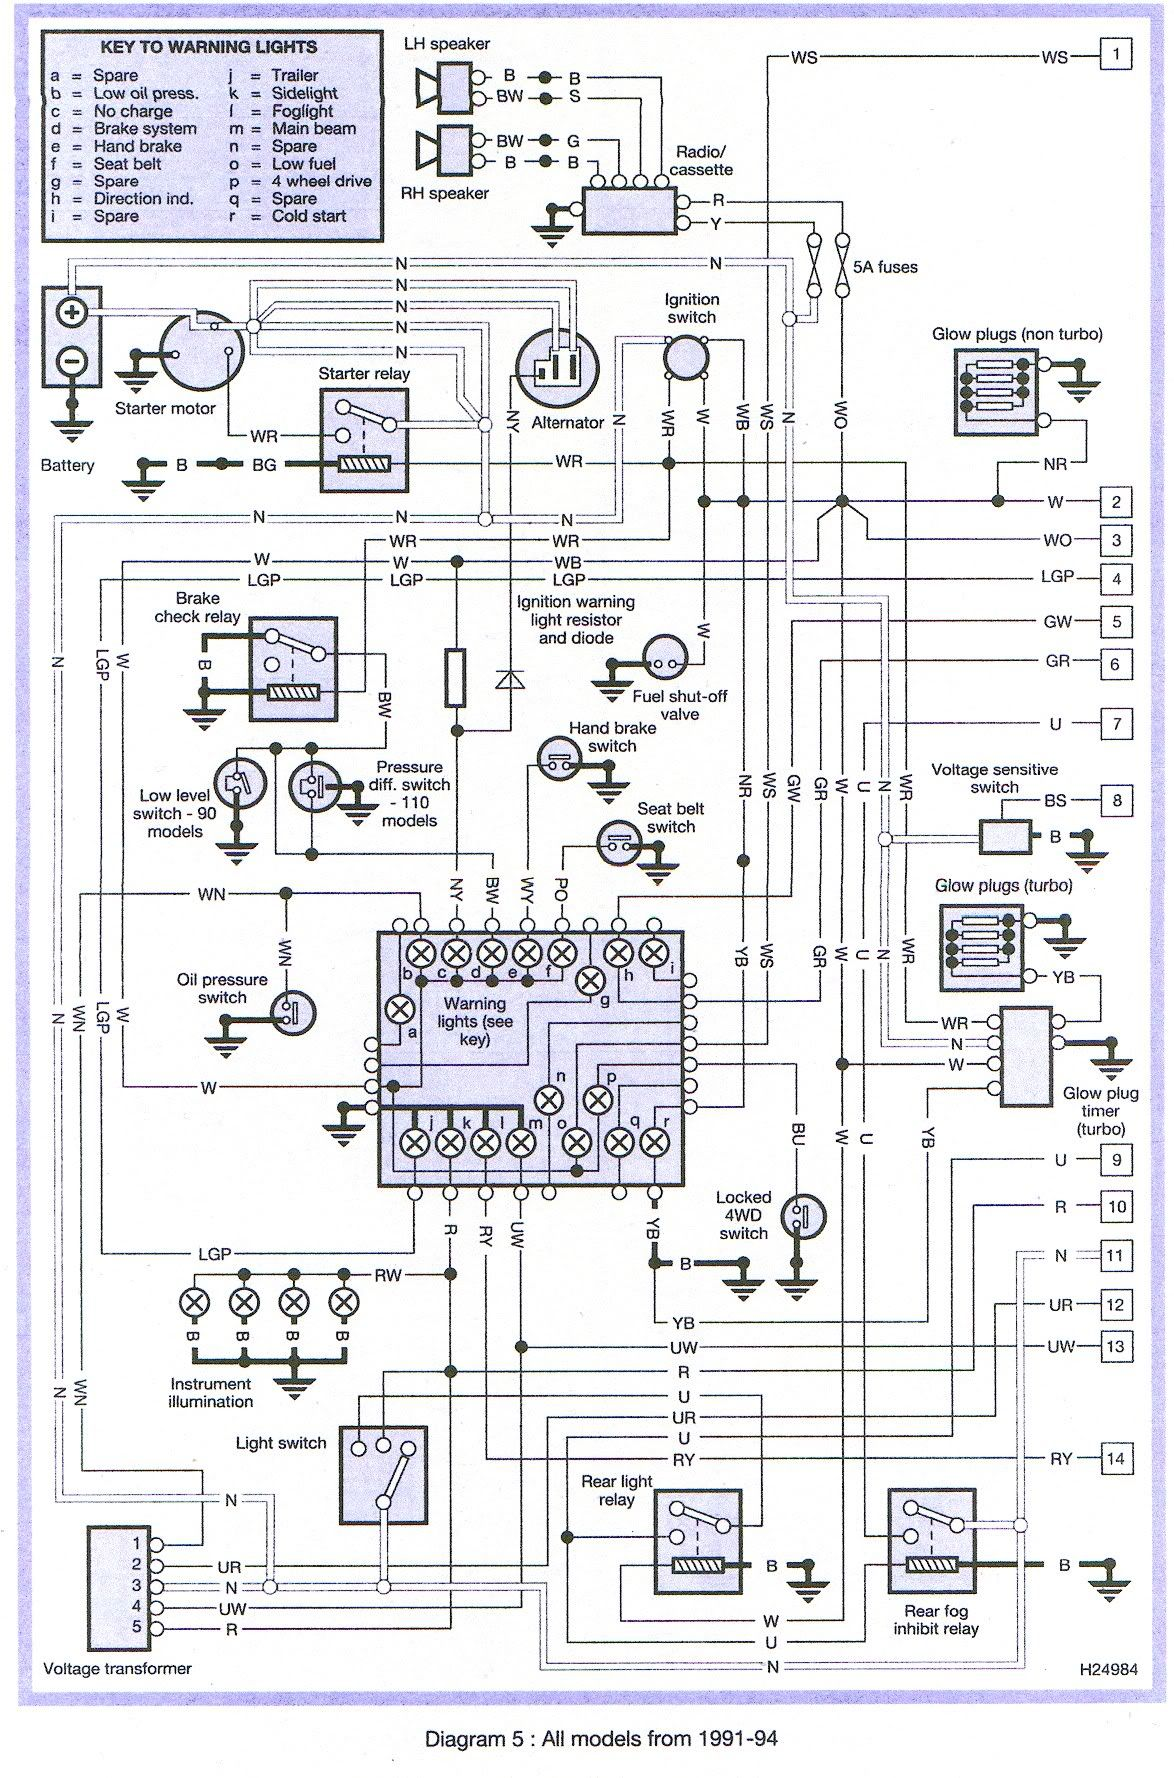 medium resolution of land rover discovery wiring diagram manual repair with engineland rover discovery wiring diagram manual repair with